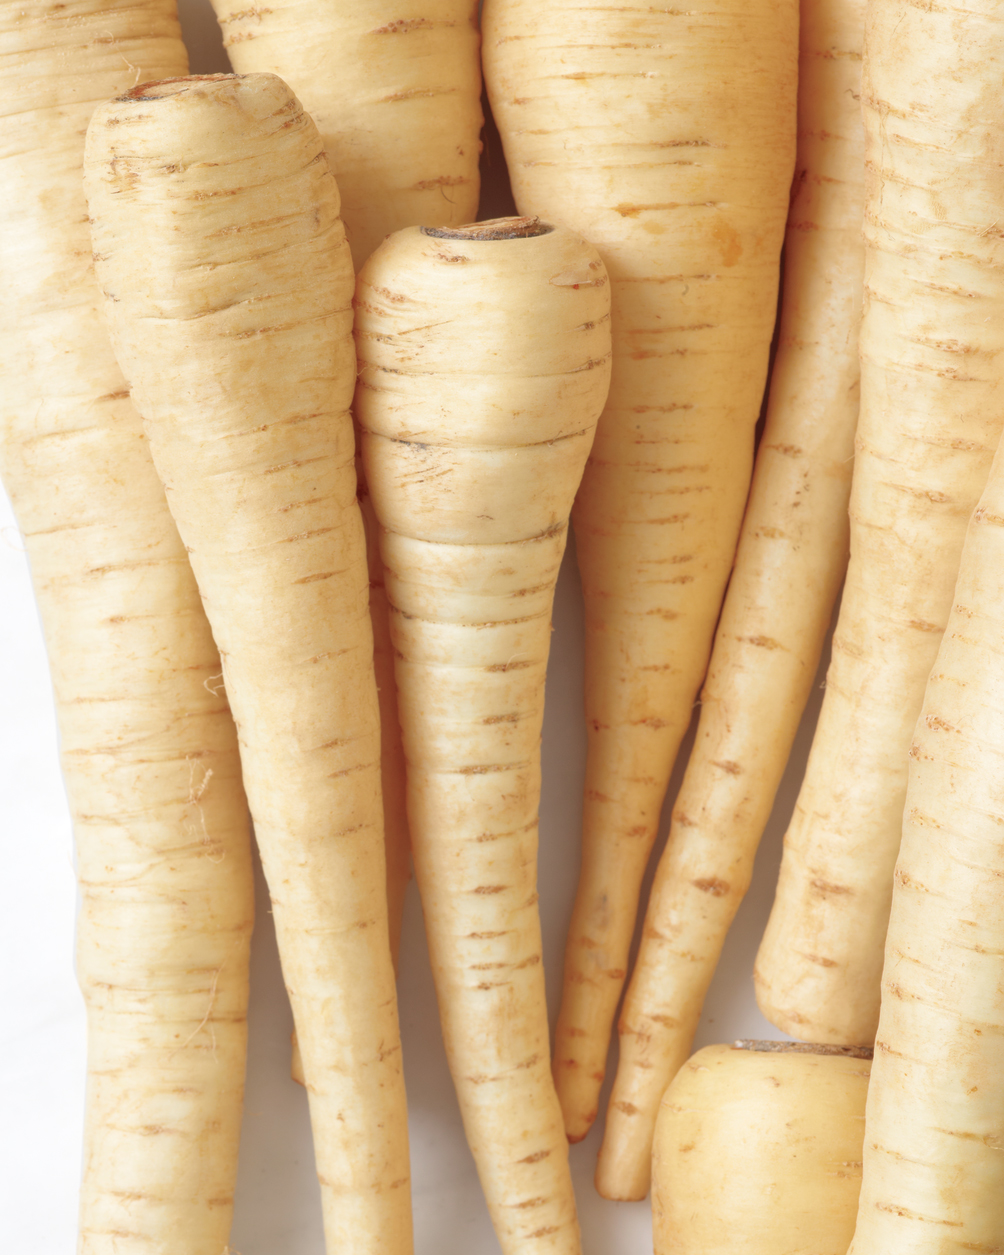 in-season-parsnips-001c-med108875.jpg